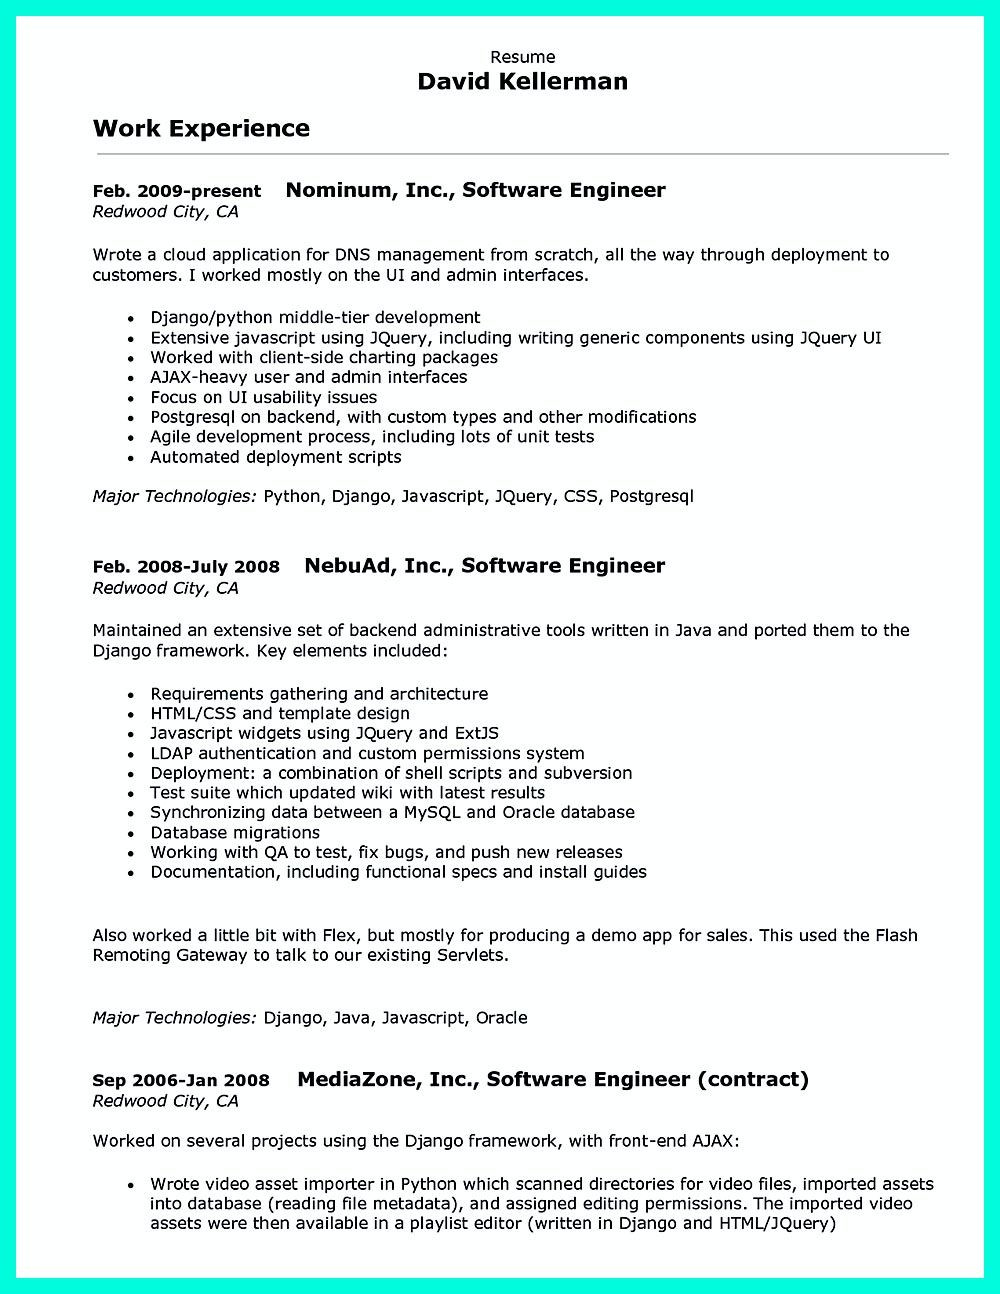 computer programmer resume examples impress employers how format - Computer Programmer Resume Examples